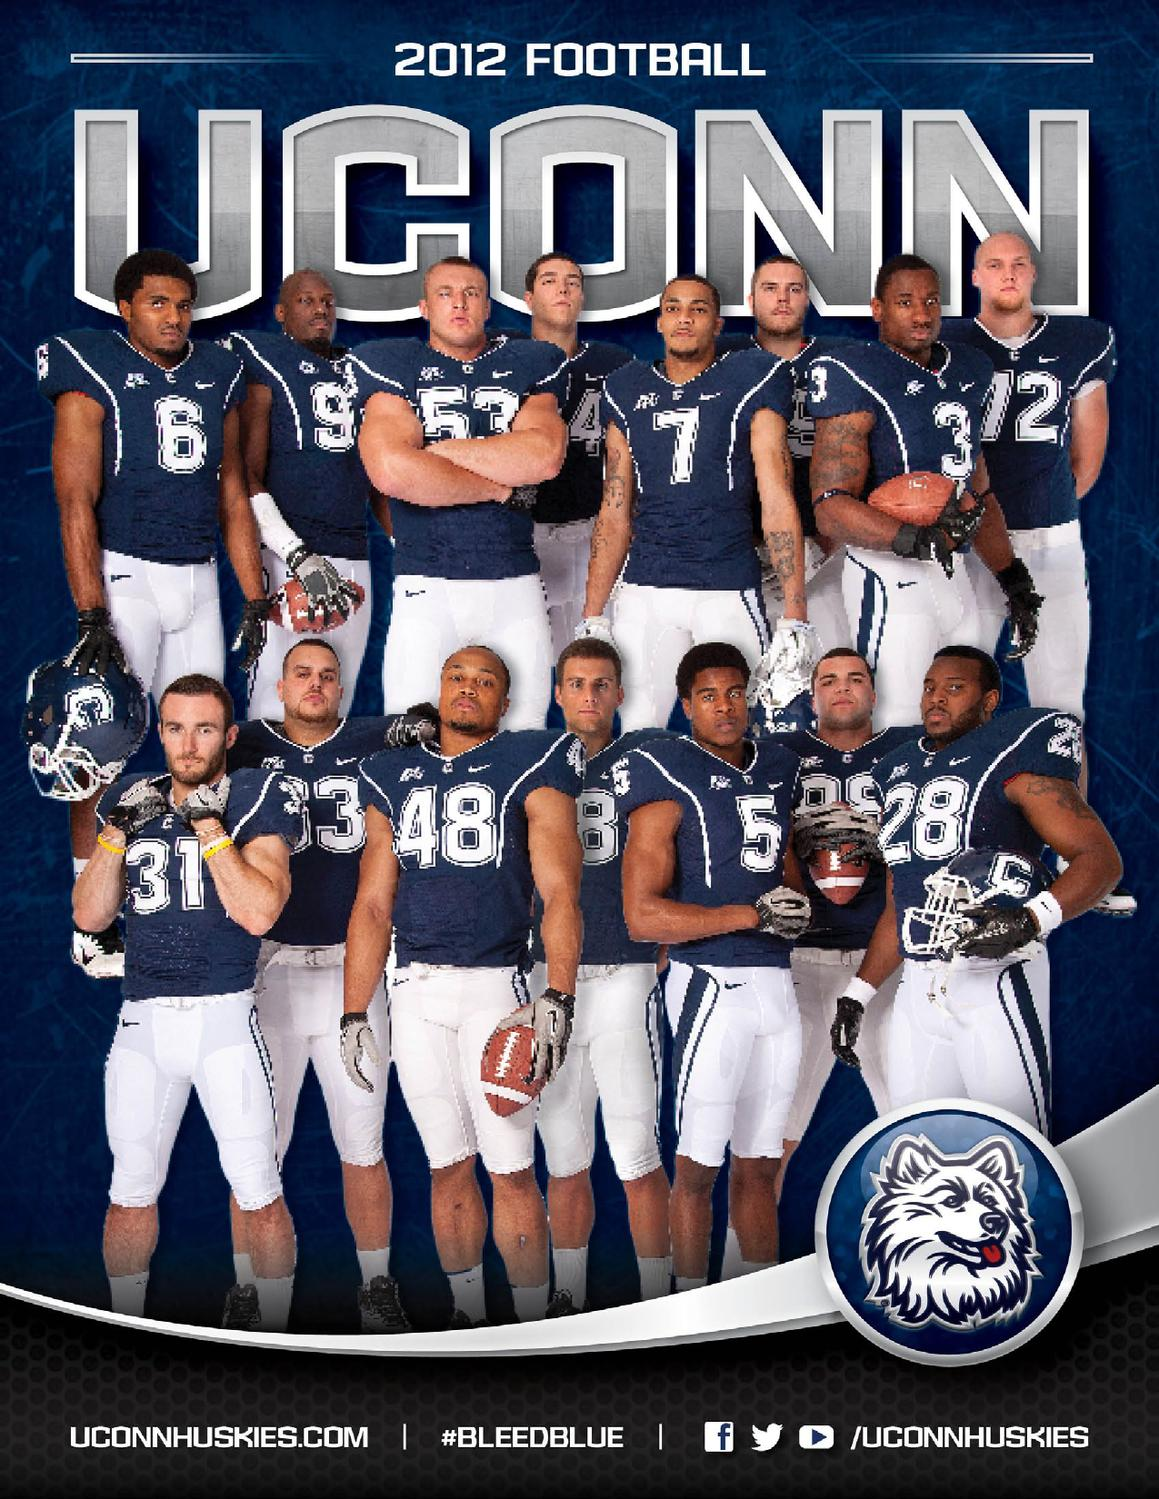 b700c845cc1 2012 UConn Football Media Guide by UConn Divison of Athletics - issuu